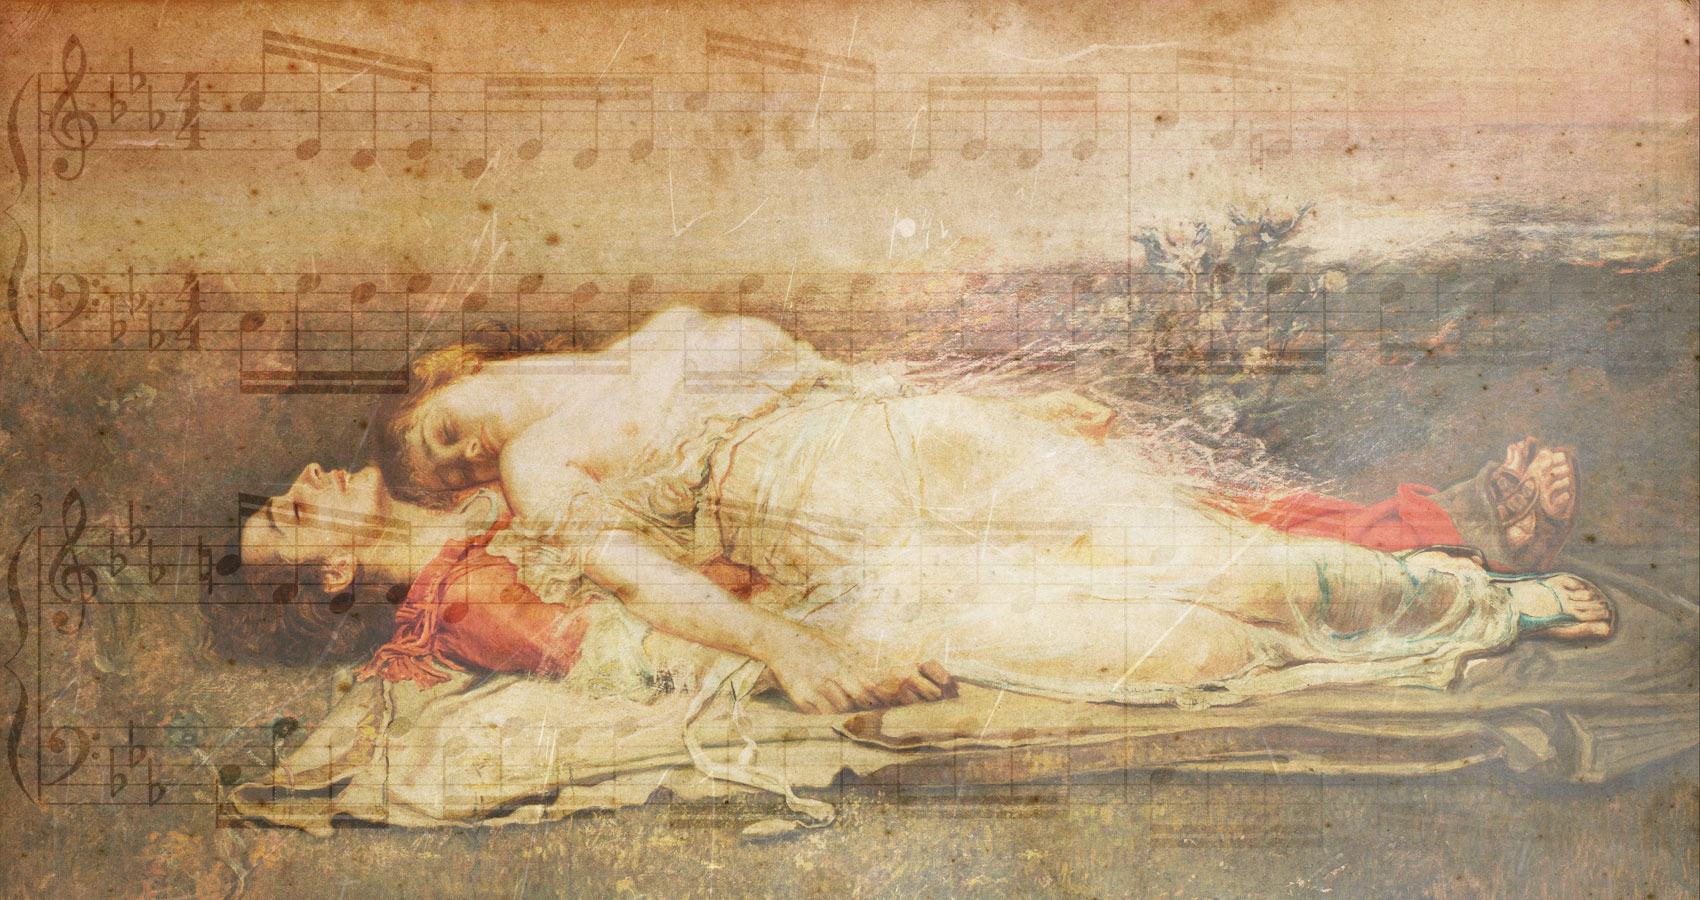 Melancholia In C Minor by L.M. Giannone at Spillwords.com